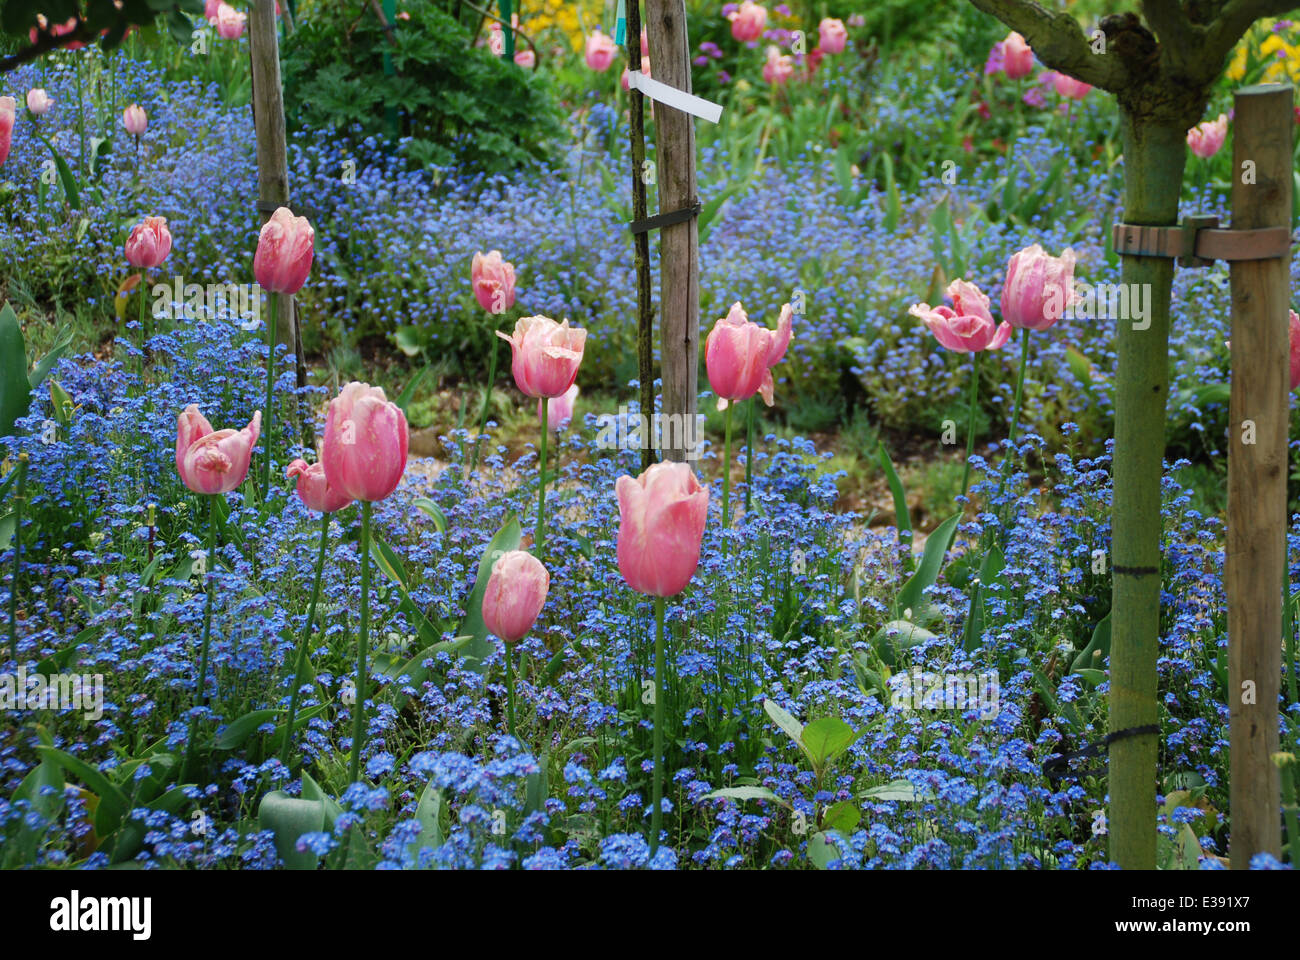 Flowers In The Giverny Gardens.   Stock Image